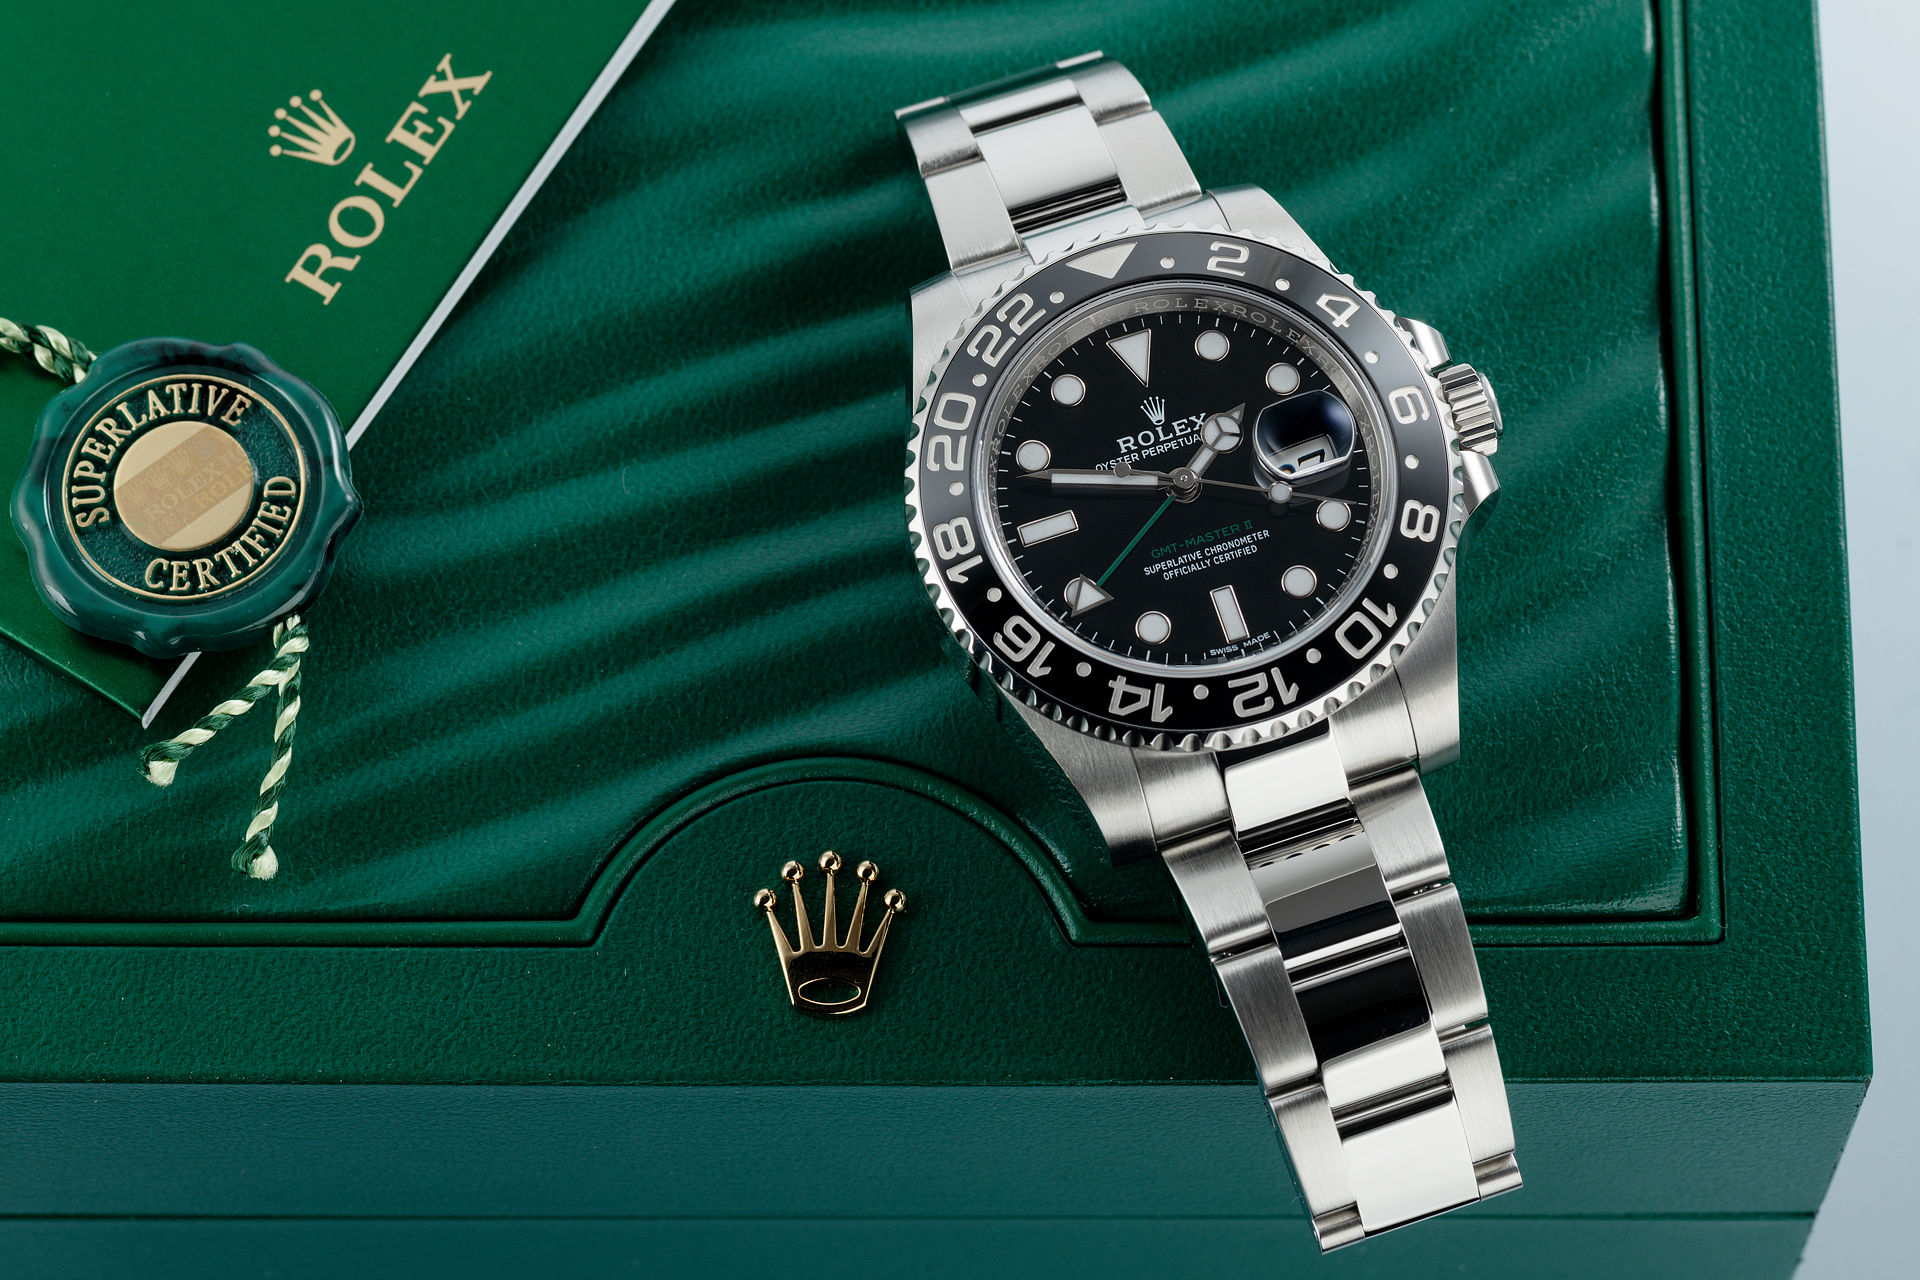 ref 116710LN | Under Rolex 5 Year Warranty | Rolex GMT-Master II